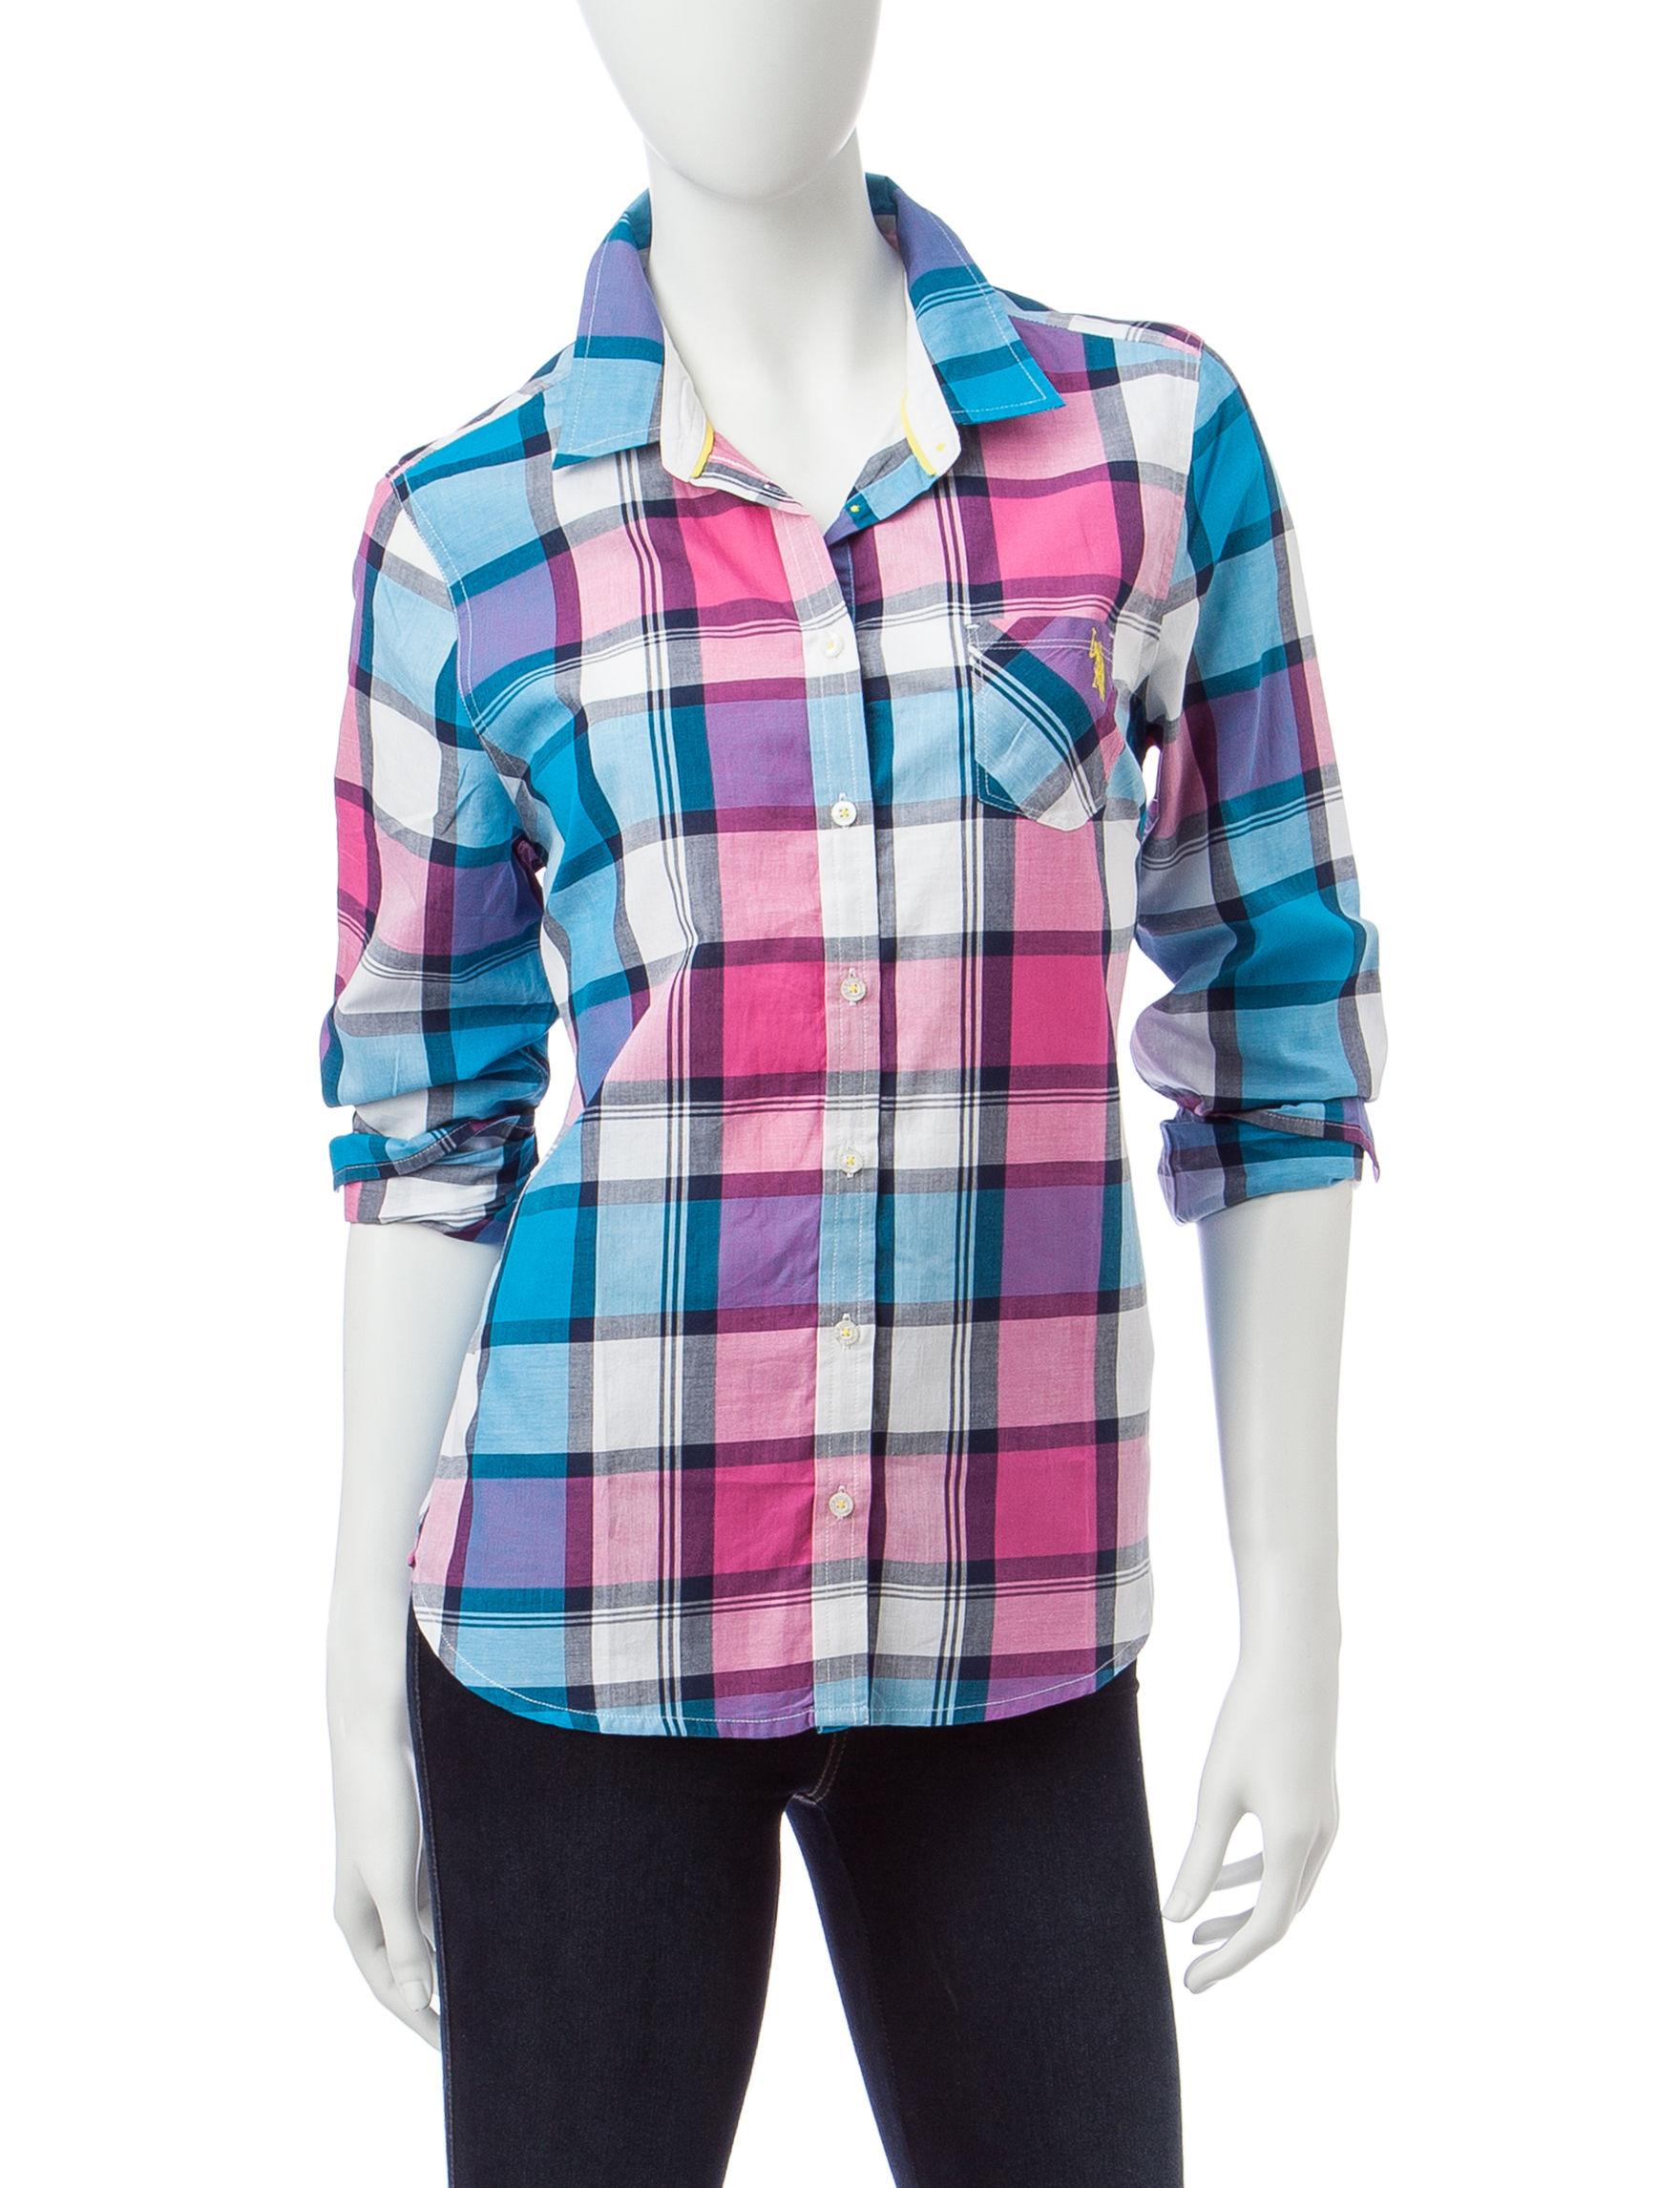 U.S. Polo Assn. Turquoise Shirts & Blouses